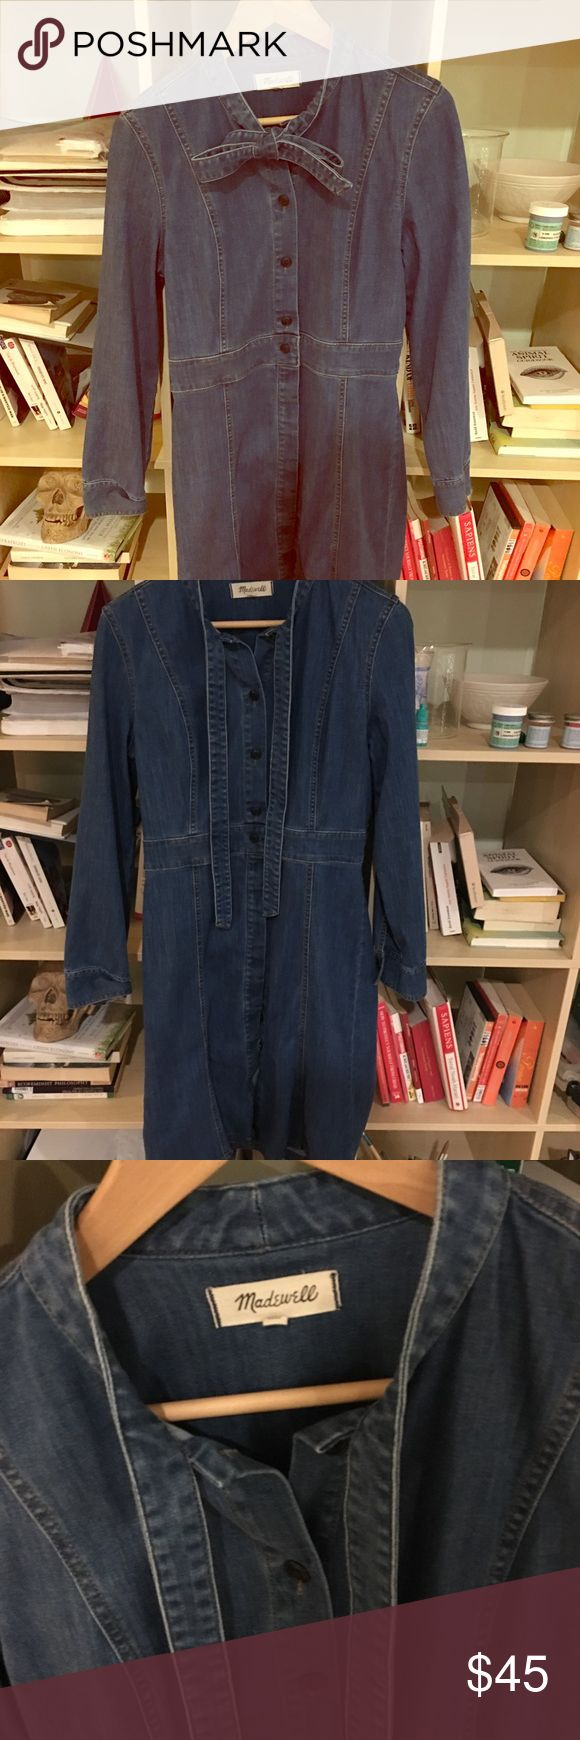 Madewell long sleeved Jean dress Very flattering Madewell Jean dress with Jean bow at the collar. Stretchy Jean fabric. Perfect for hourglass figure. Size 8 but could fit a 10. Open to reasonable offers! Madewell Dresses Midi